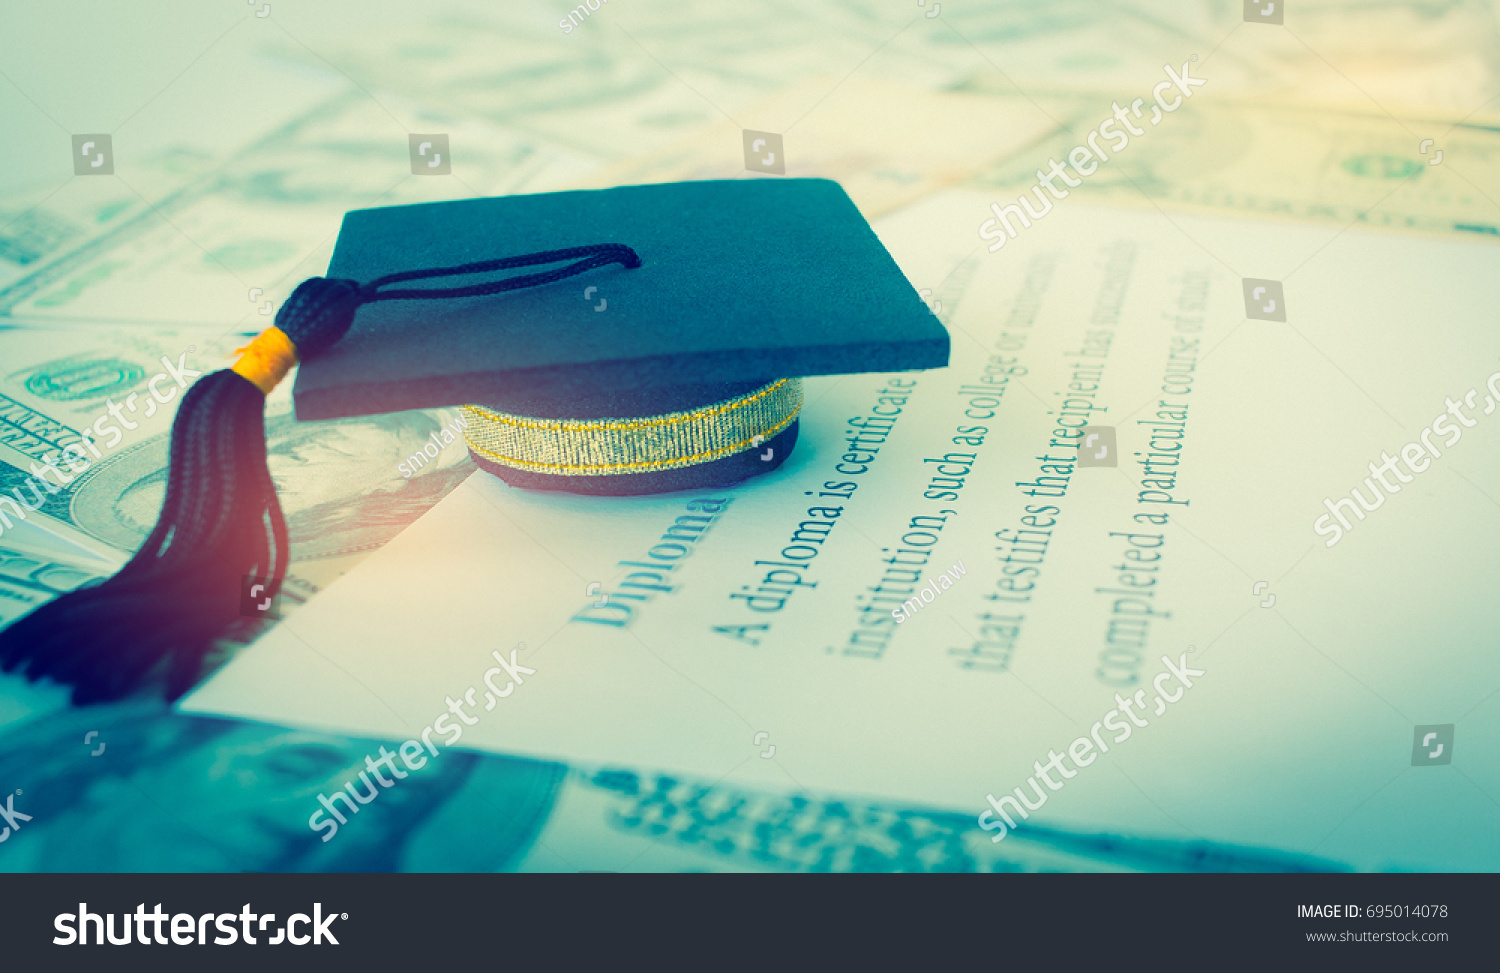 graduation cap on letter book diploma stock photo  graduation cap on a letter book diploma goals concept of graduate education abroad in